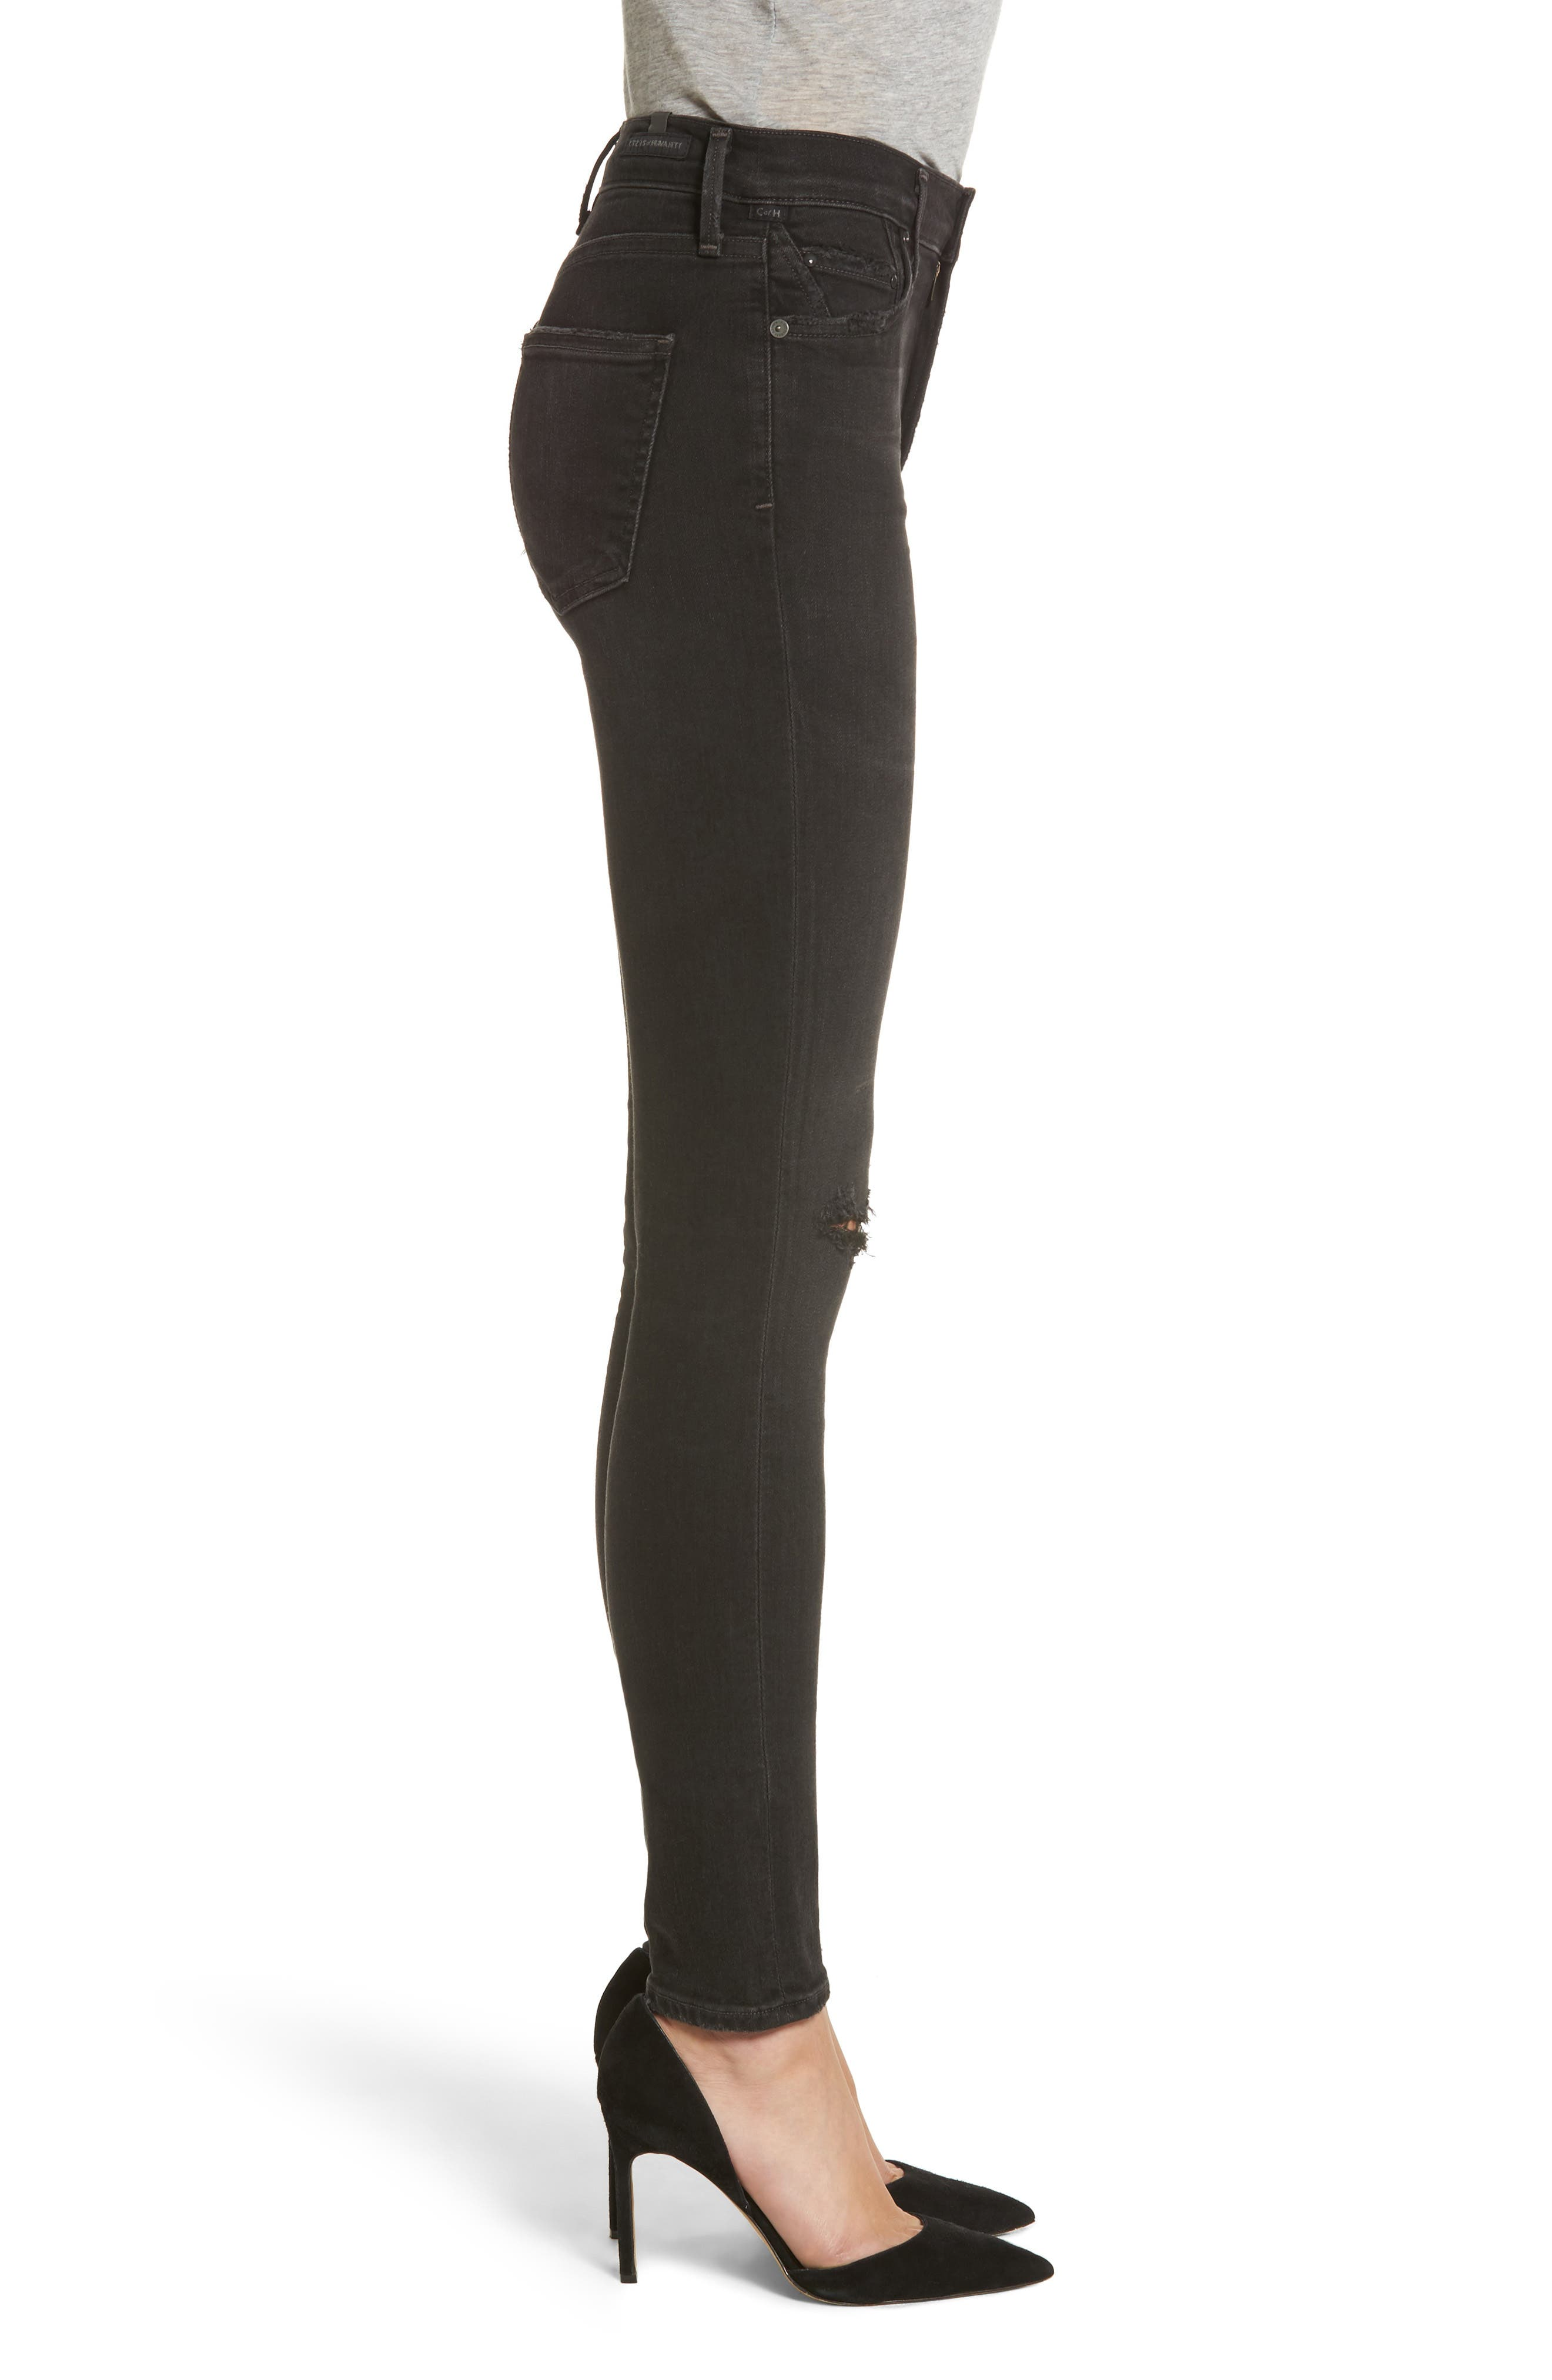 Rocket High Waist Skinny Jeans,                             Alternate thumbnail 3, color,                             005